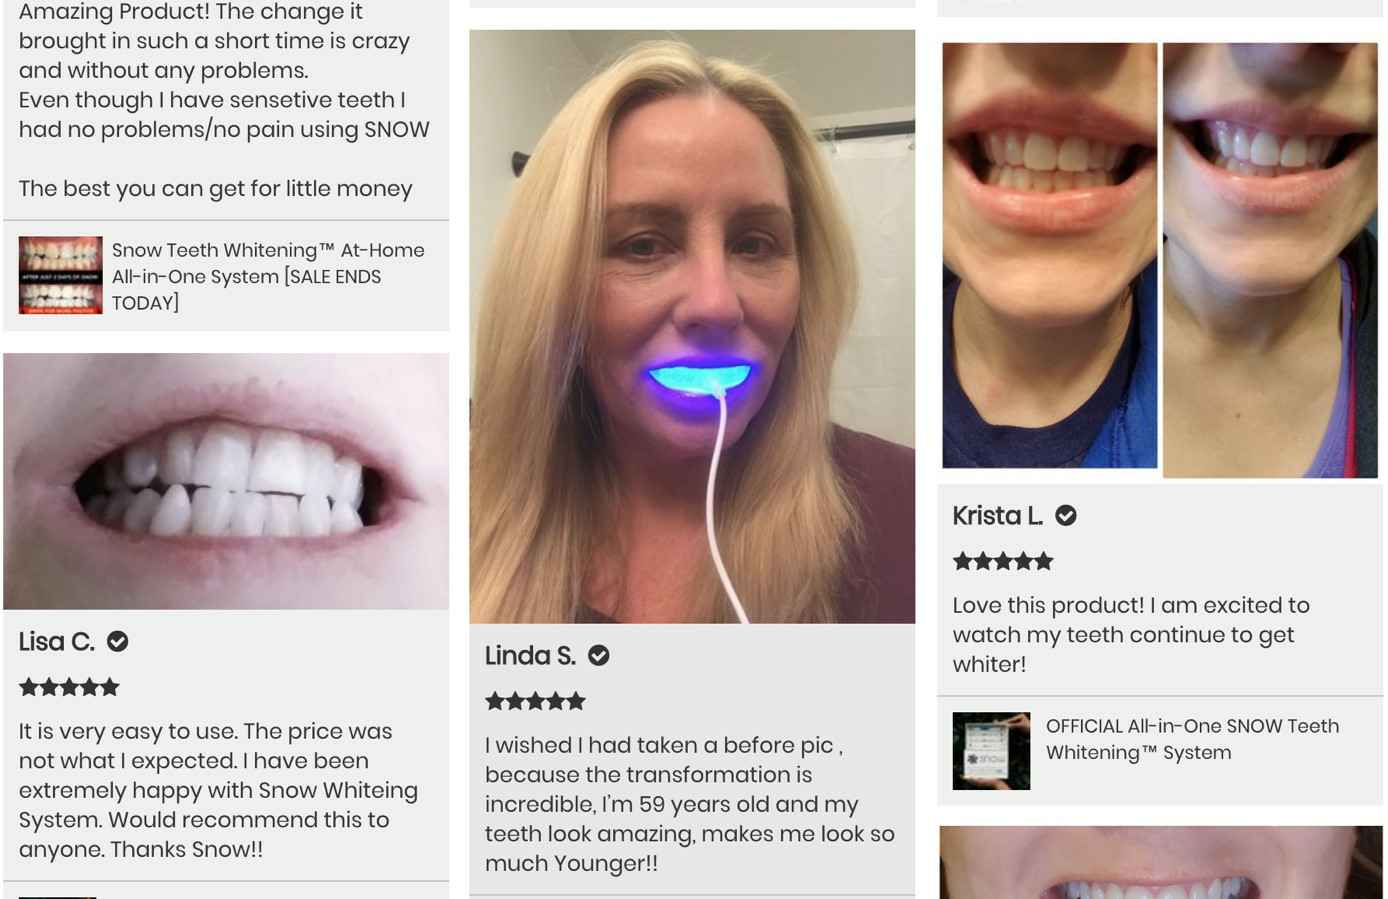 For Sale In Best Buy  Snow Teeth Whitening